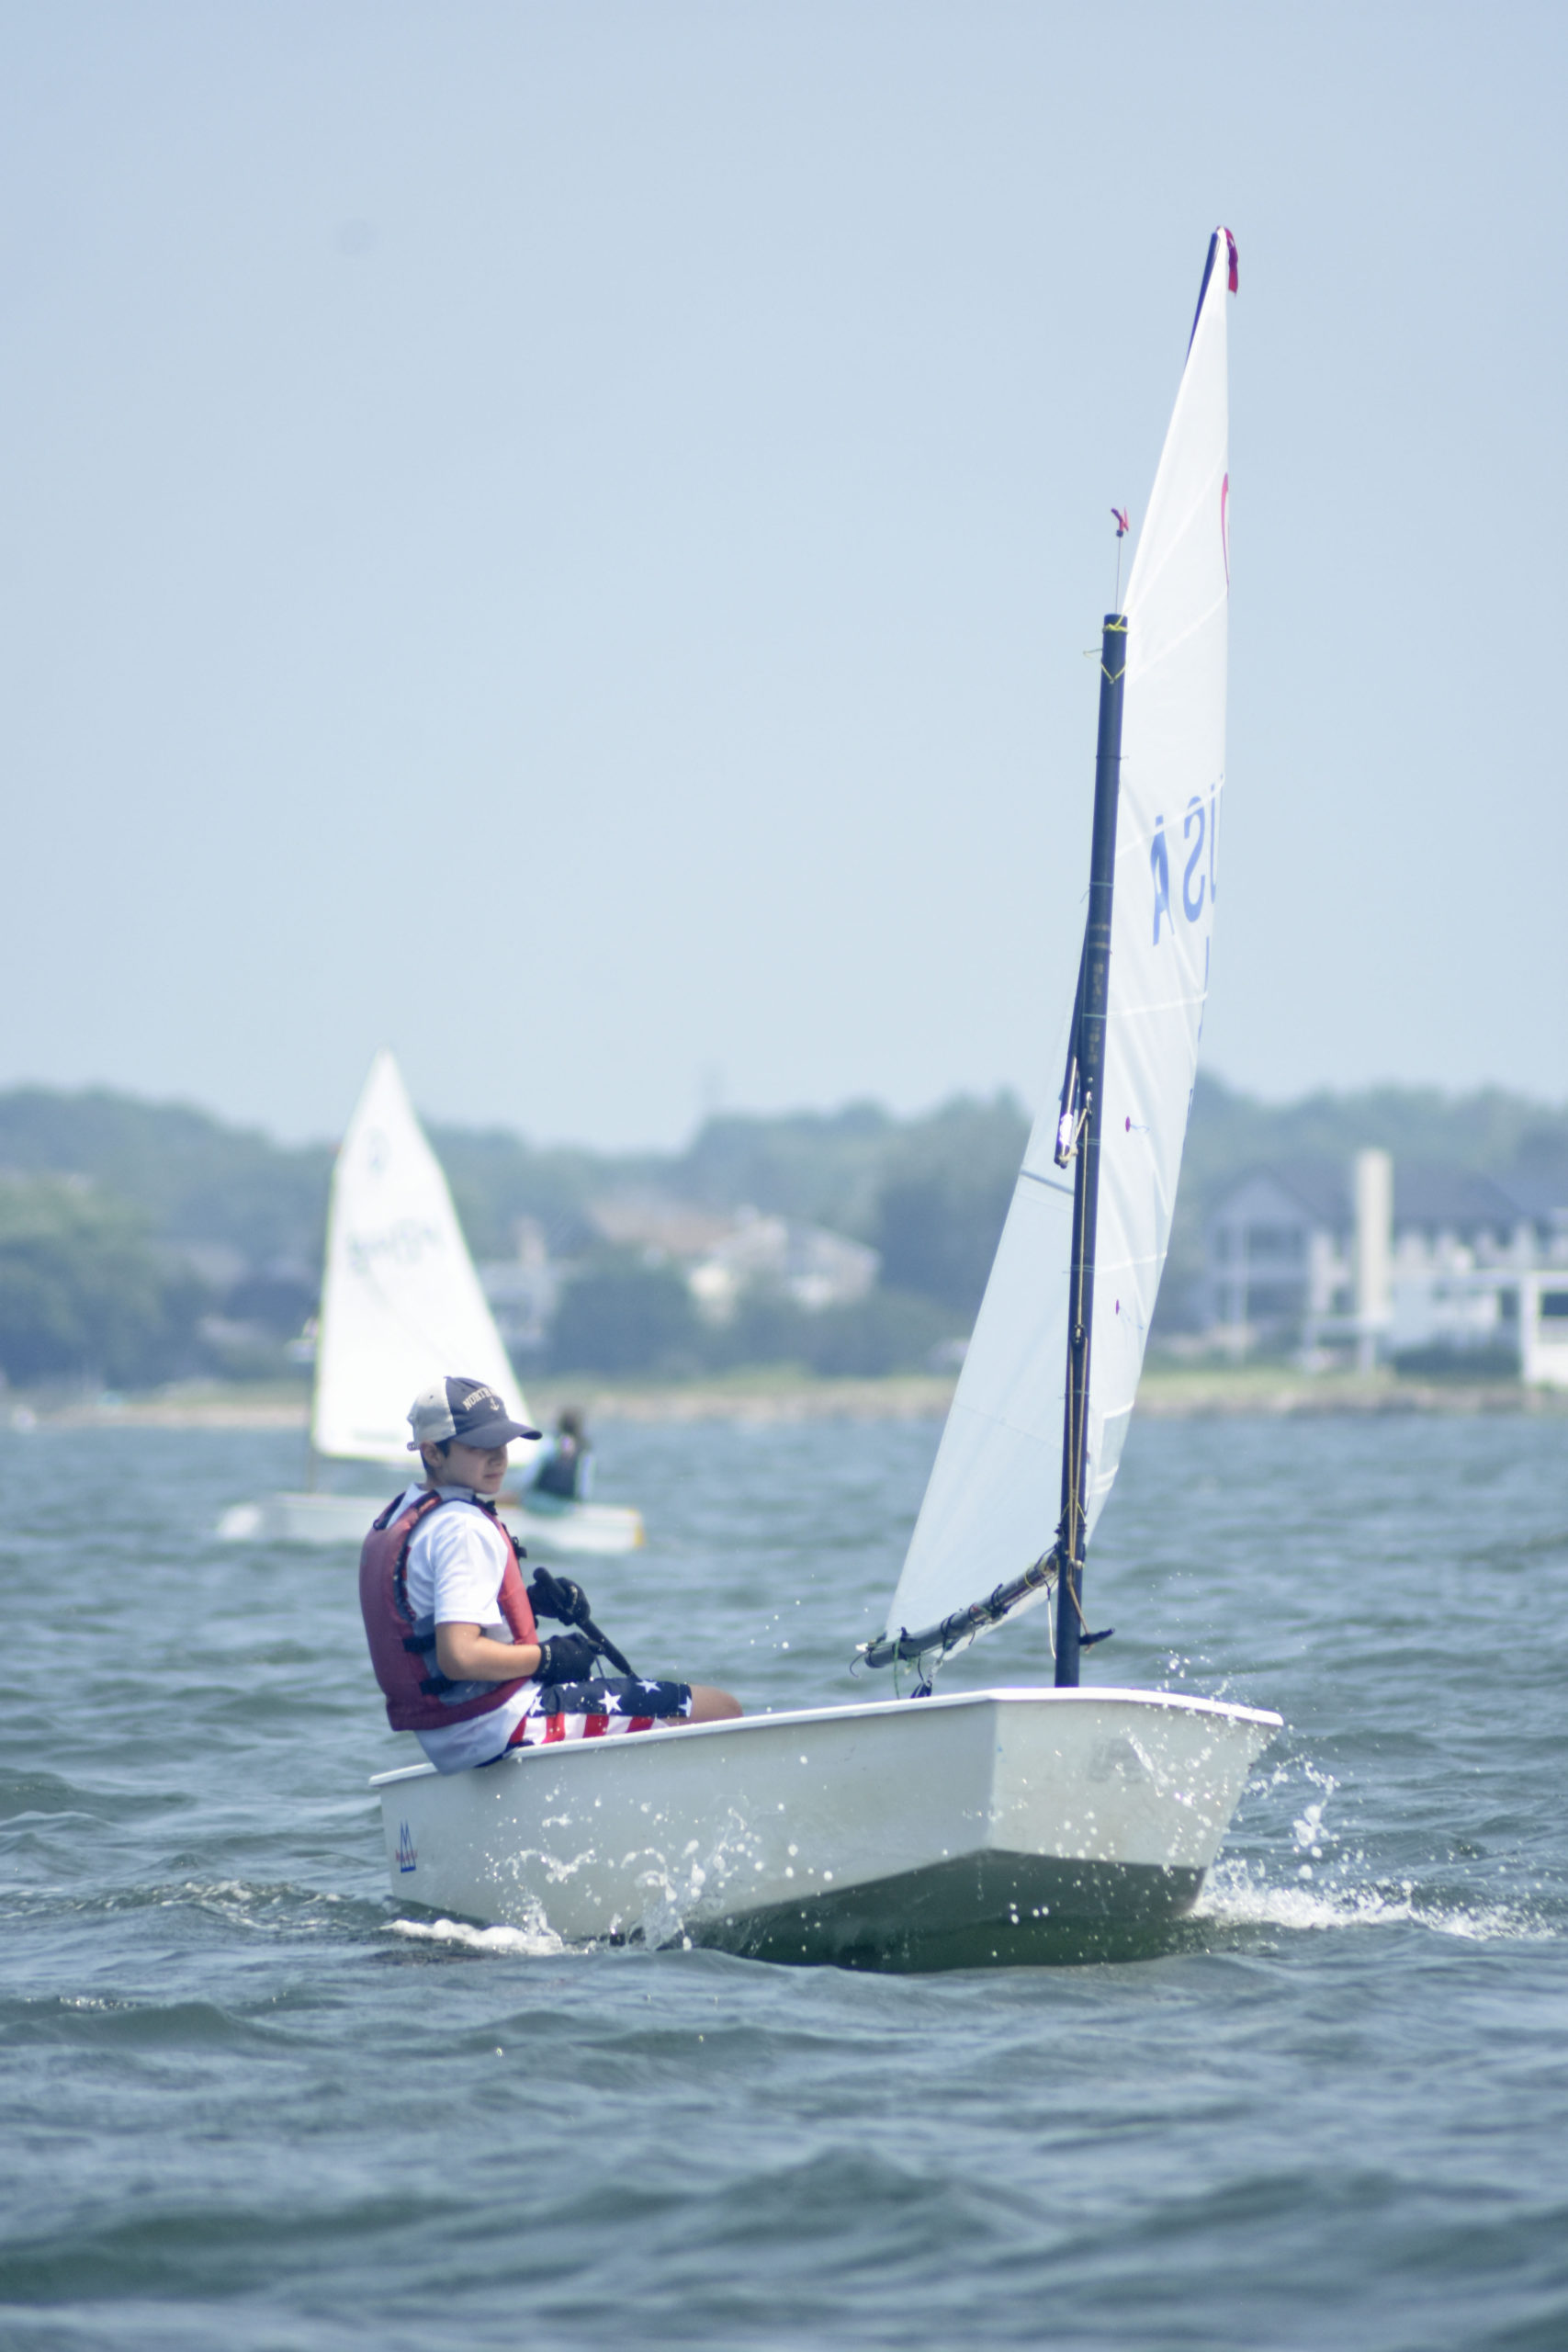 Everett Lehnert of Old Cove Yacht Club in New Suffolk, who went on to win the blue fleet.